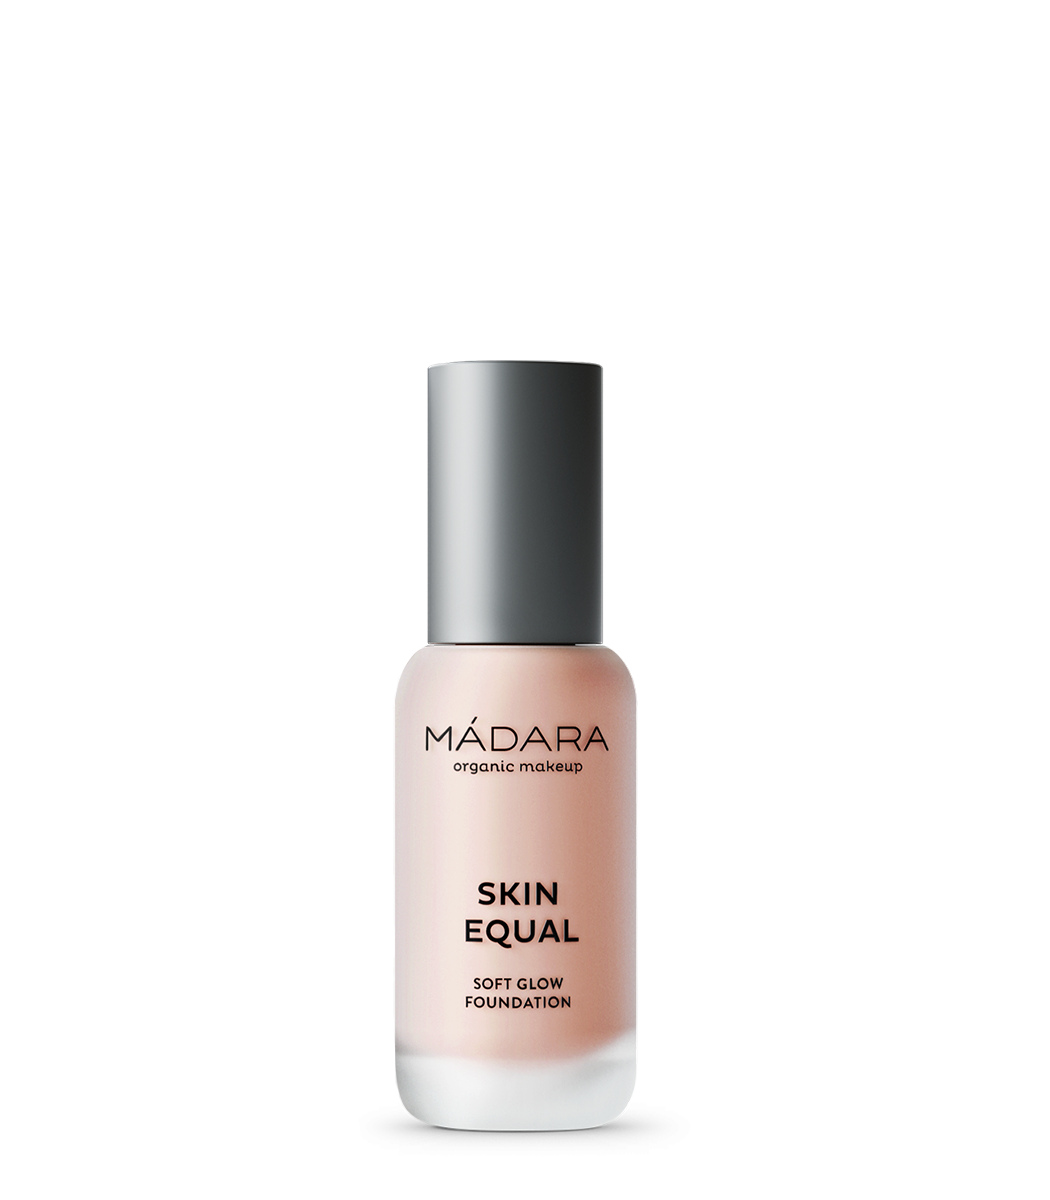 Mádara Skin Equal Foundation #30 Rose Ivory 30ml